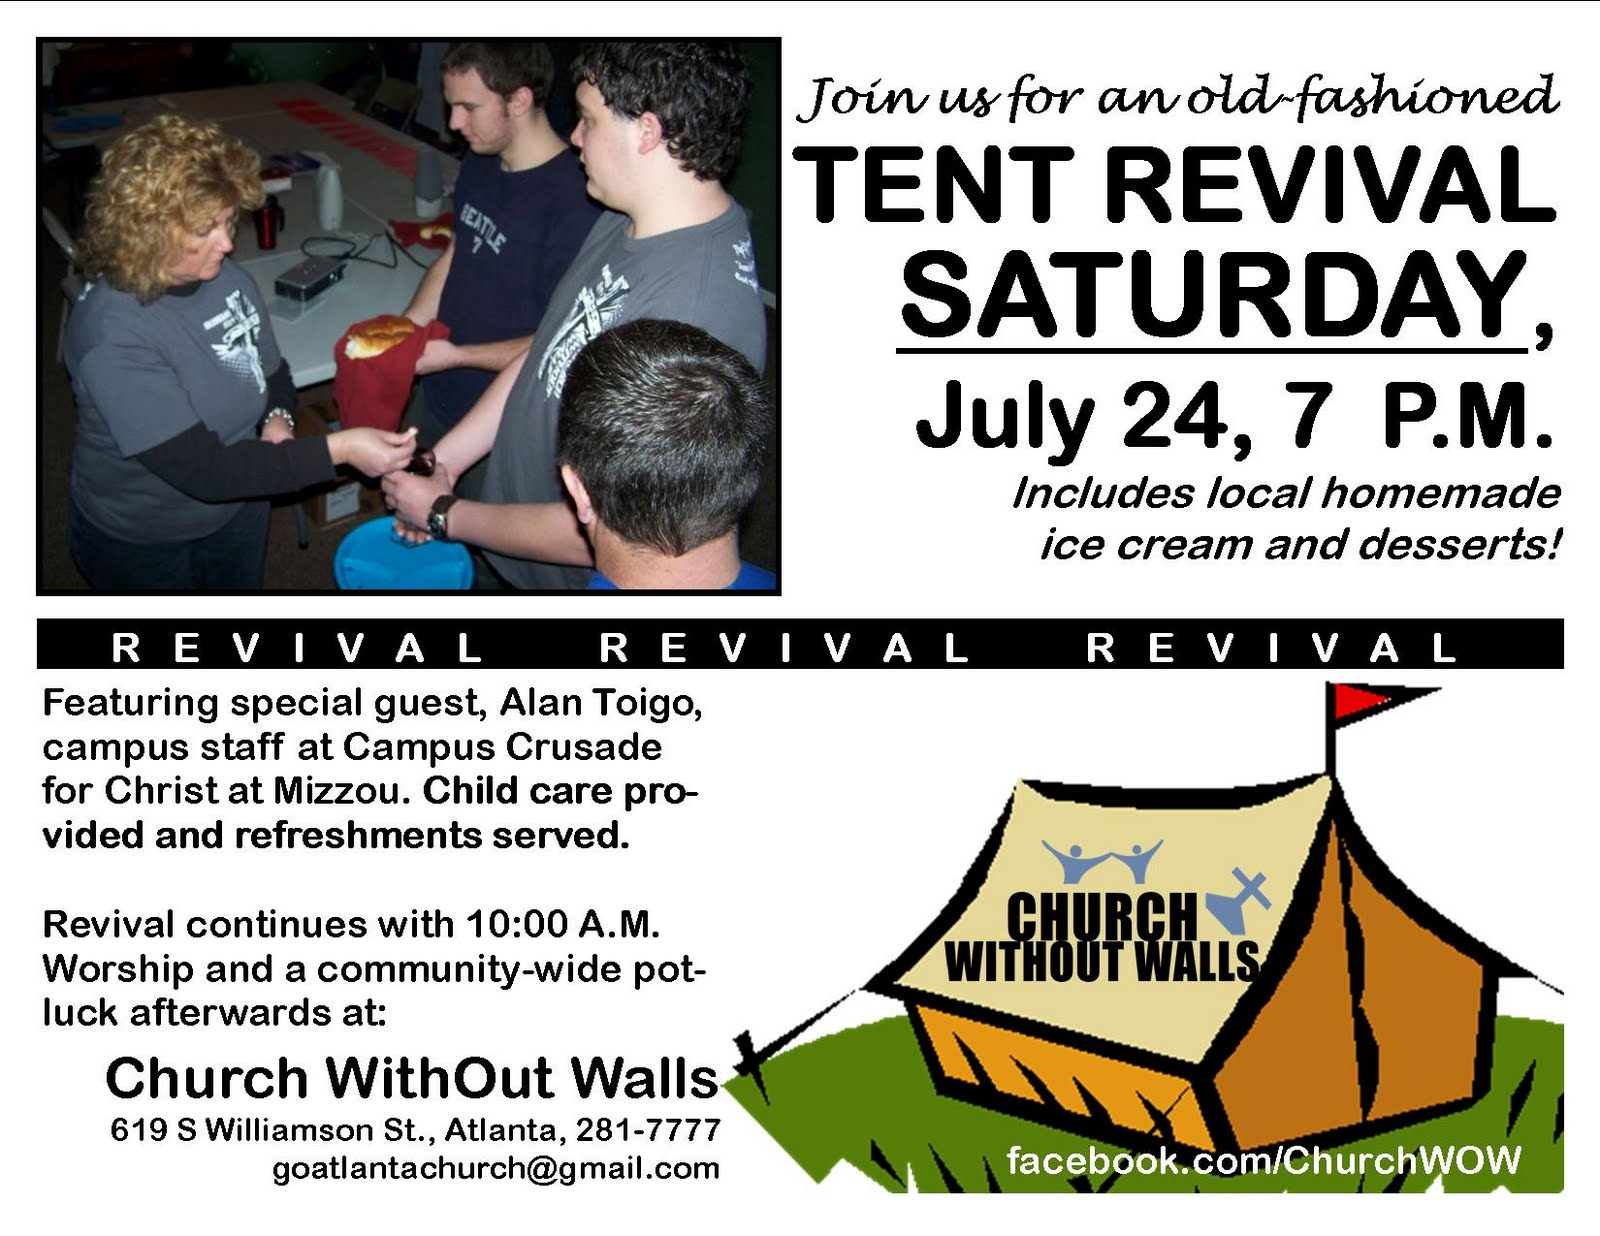 An old fashioned tent revival will be held at Church WithOut Walls in Atlanta on Saturday July 24 2010 at 700 P.M. The public is invited to attend.  sc 1 st  Church WithOut Walls Atlanta Missouri - Blogspot : mizzou tent - memphite.com